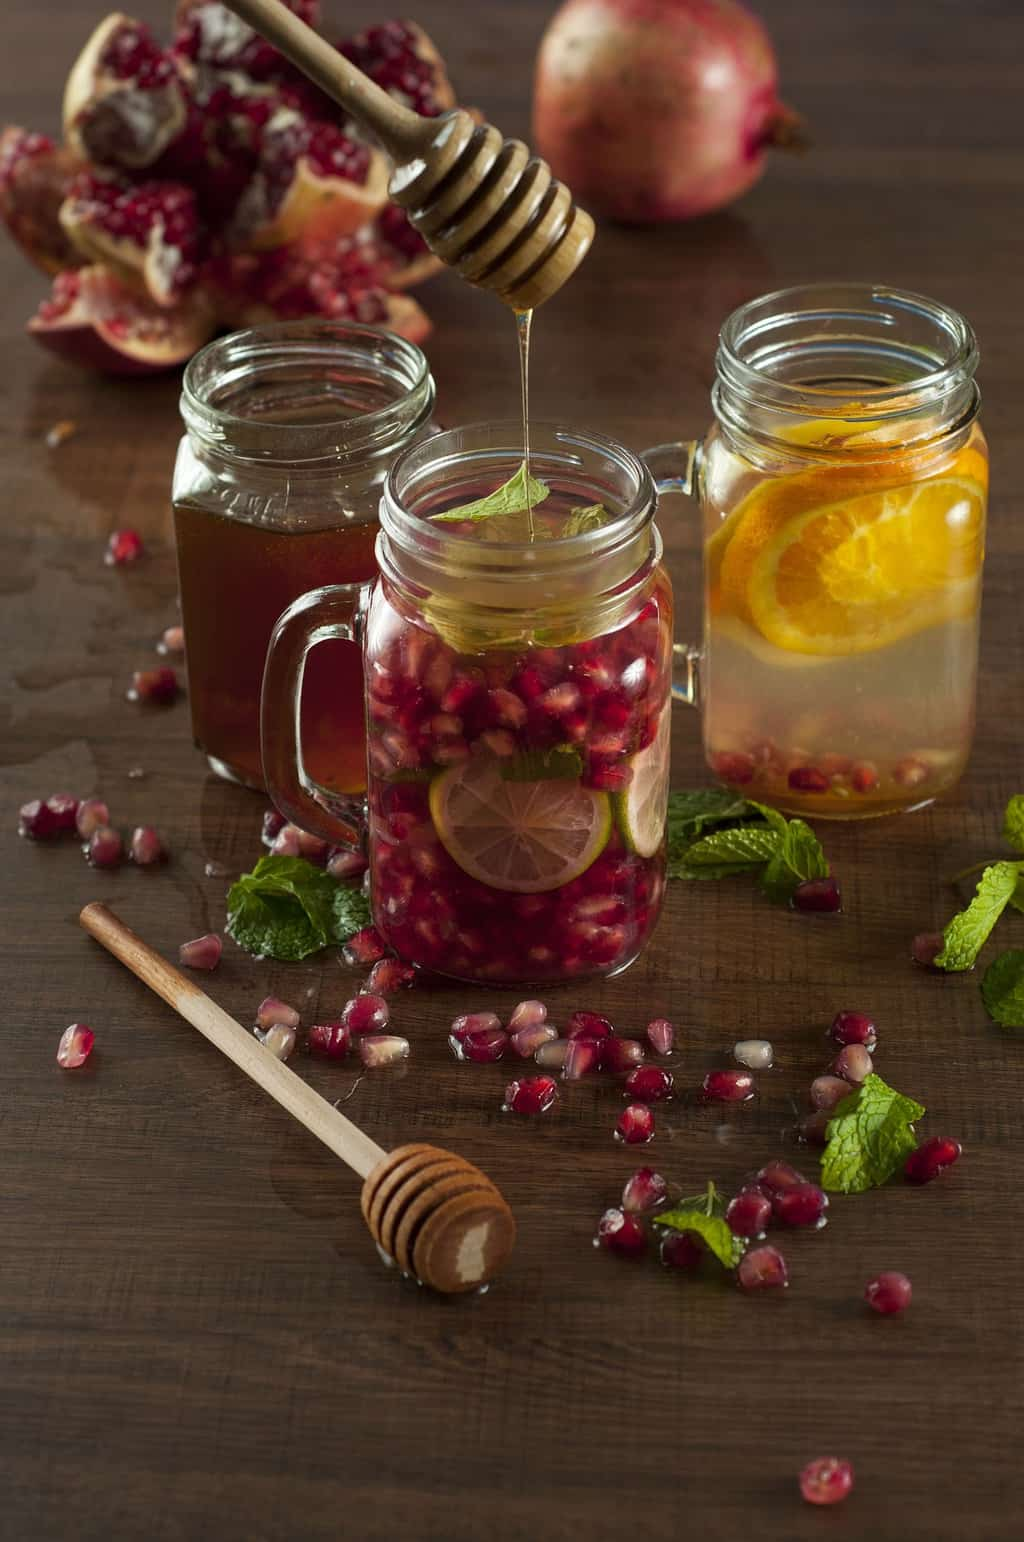 10 Naturally Effective Ways to Fight a Cold/Flu